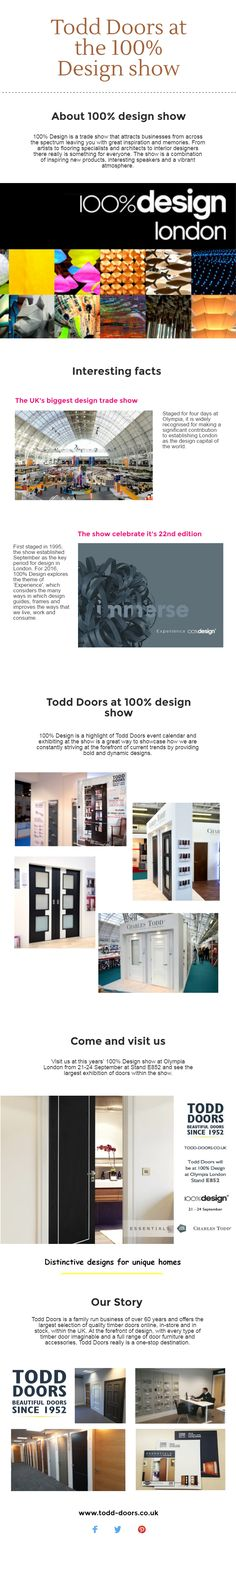 100% design is a highlight of Todd Doors event calendar and exhibiting at the show is a great way to showcase how we are constantly striving at the forefront of current trends by providing bold and dynamic designs. Visit at this year 100% Design show at Olympia from 21-24 September at STAND E852 and see the largest exhibition of doors within the show.